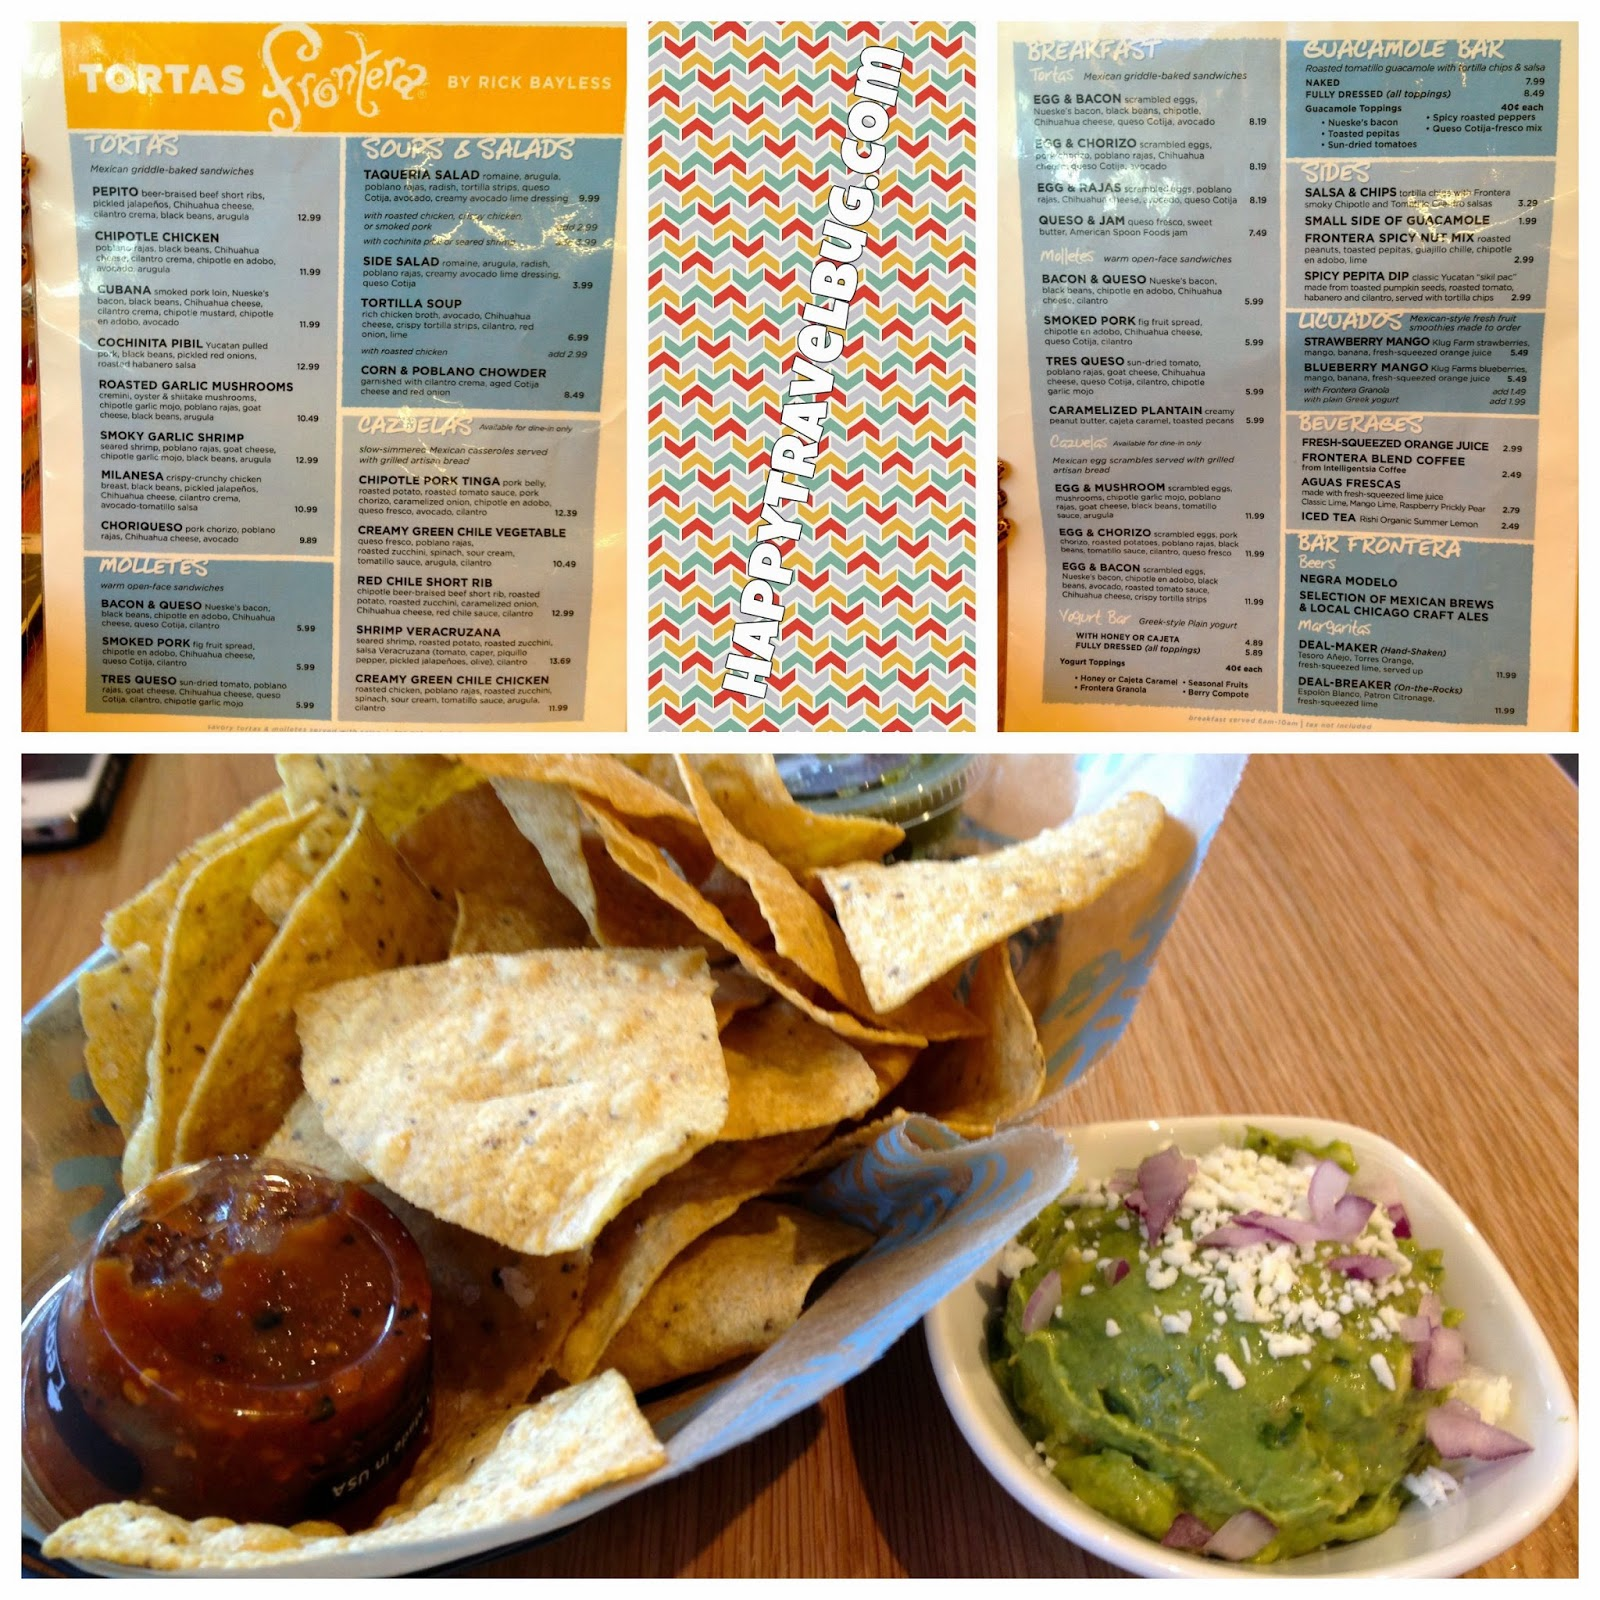 Frontera by Rick Bayless at O'Hare International Airport